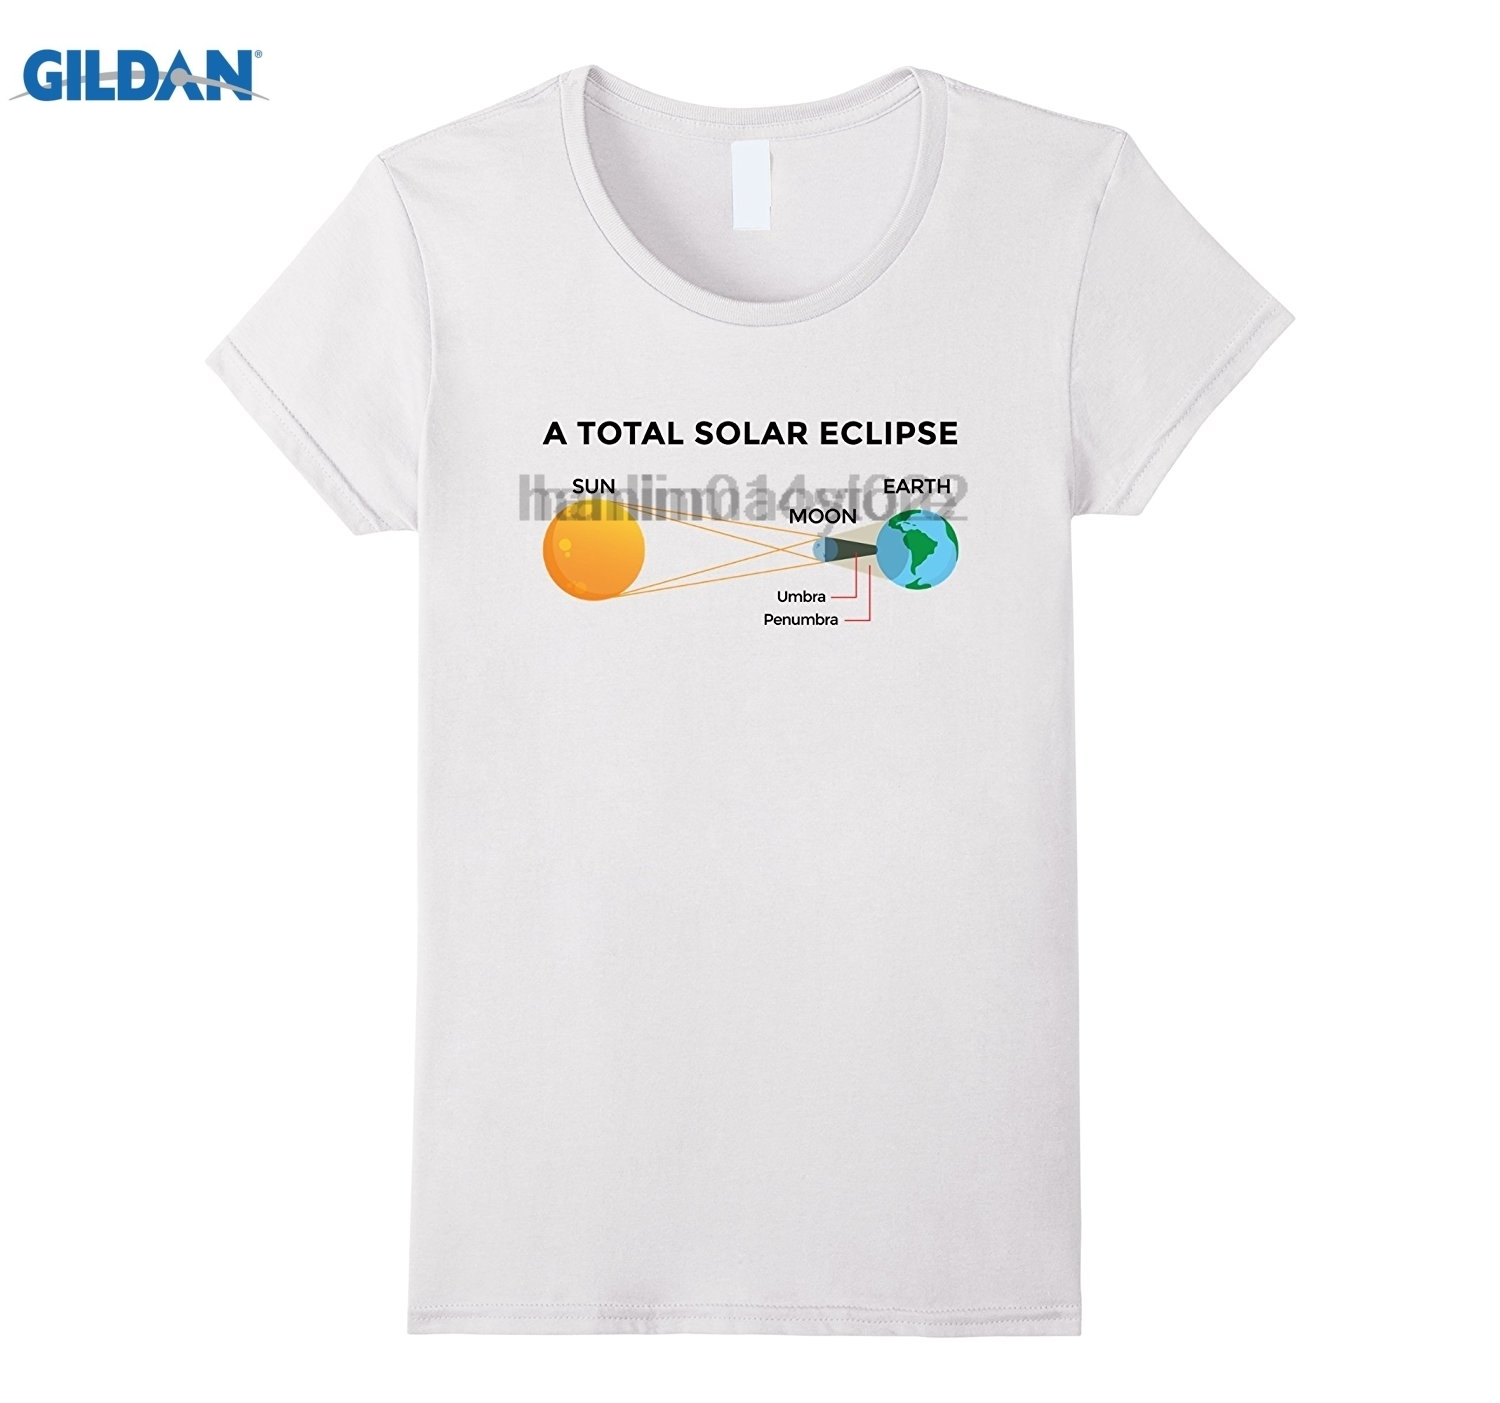 gildan total solar eclipse diagram t shirt in t shirts from men s clothing on aliexpress com alibaba group [ 1500 x 1403 Pixel ]